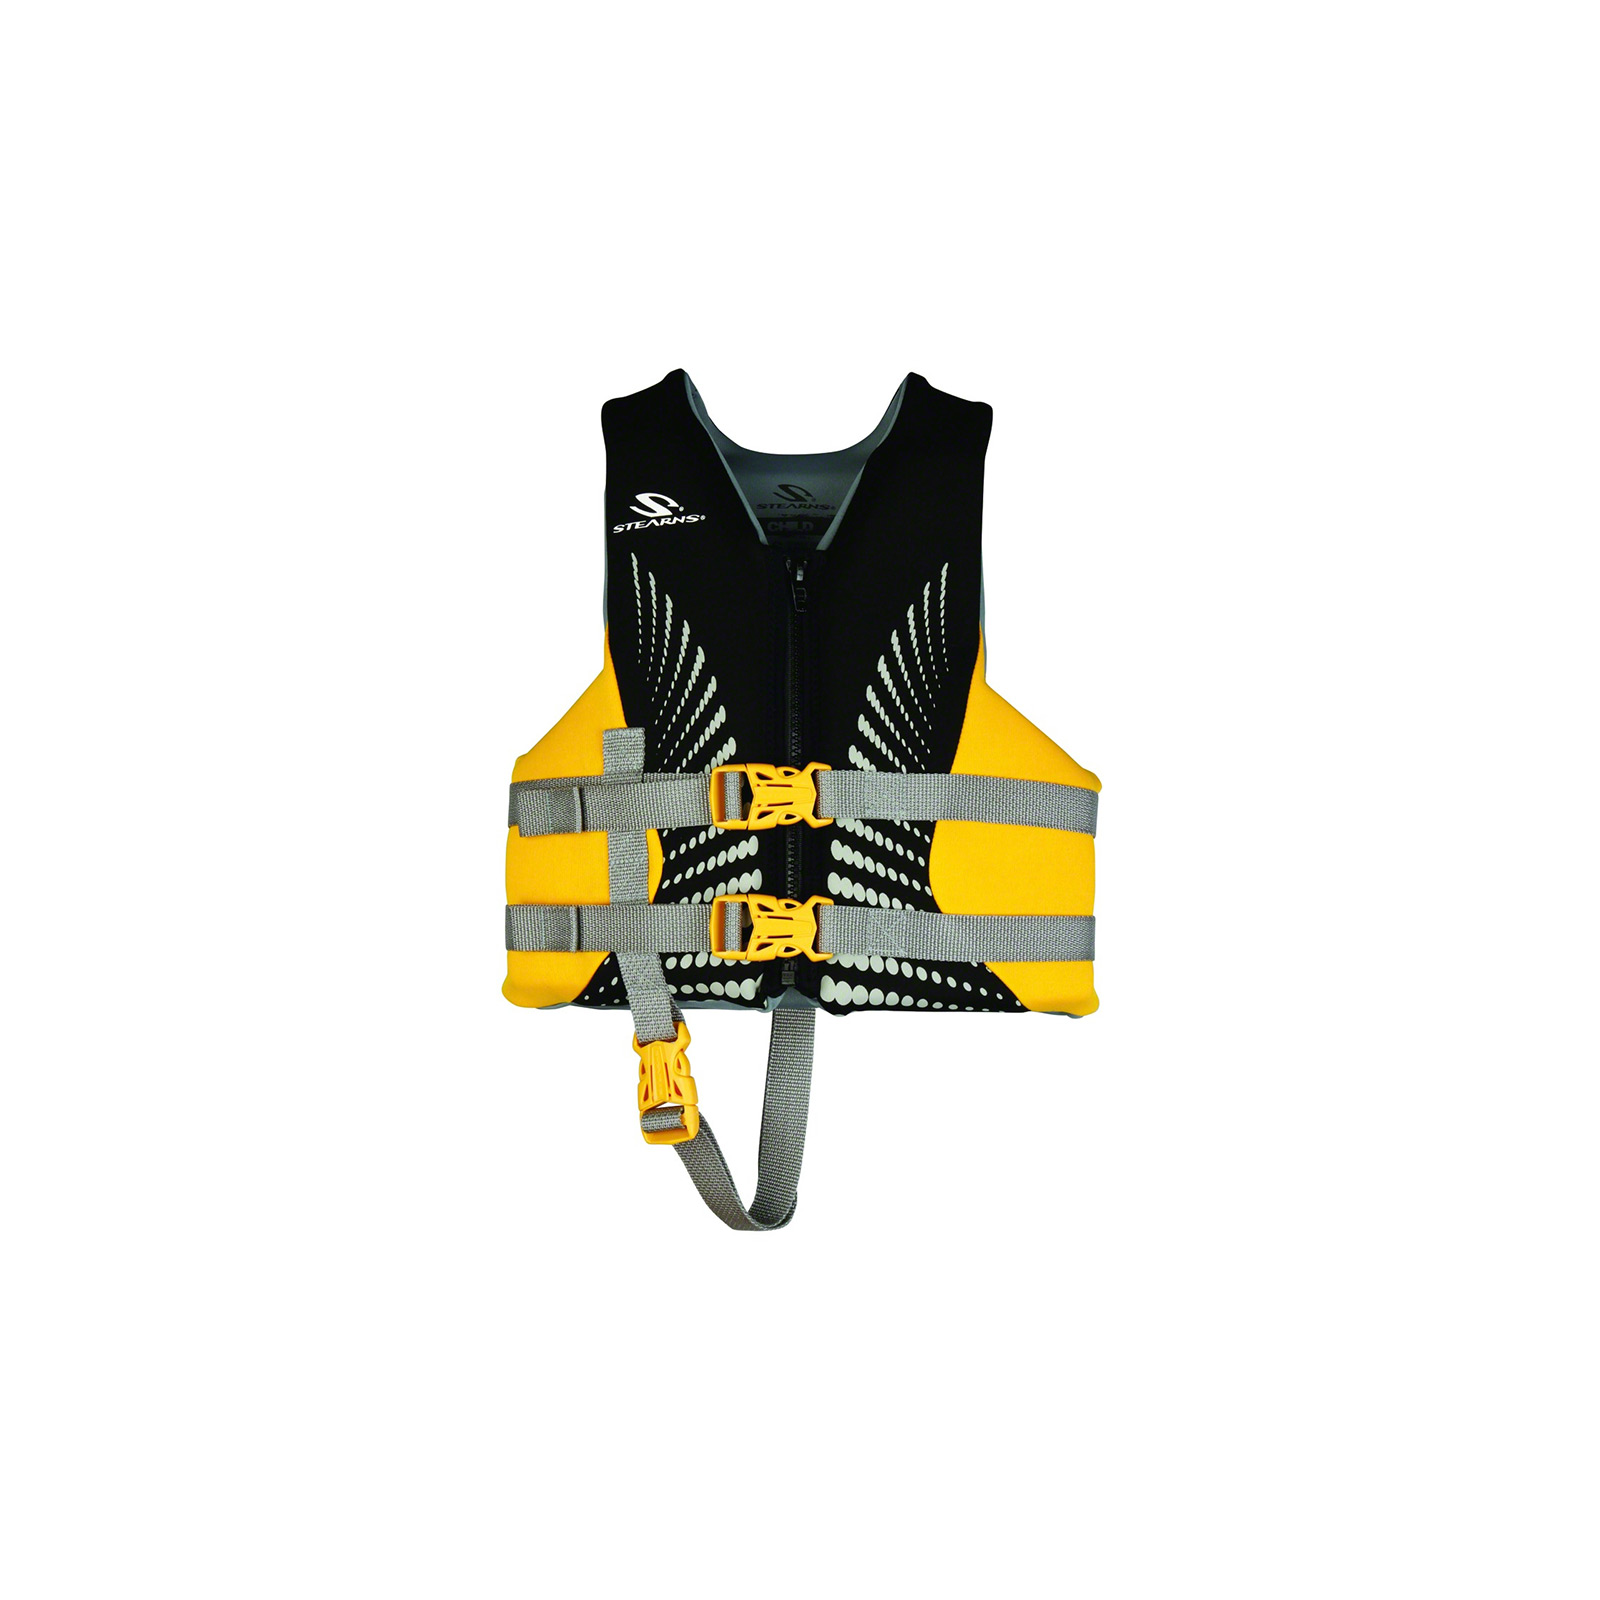 Stearns PFD 5417 Child Hydroprene Life Jacket, Gold Rush, 2000013893 by Stearns